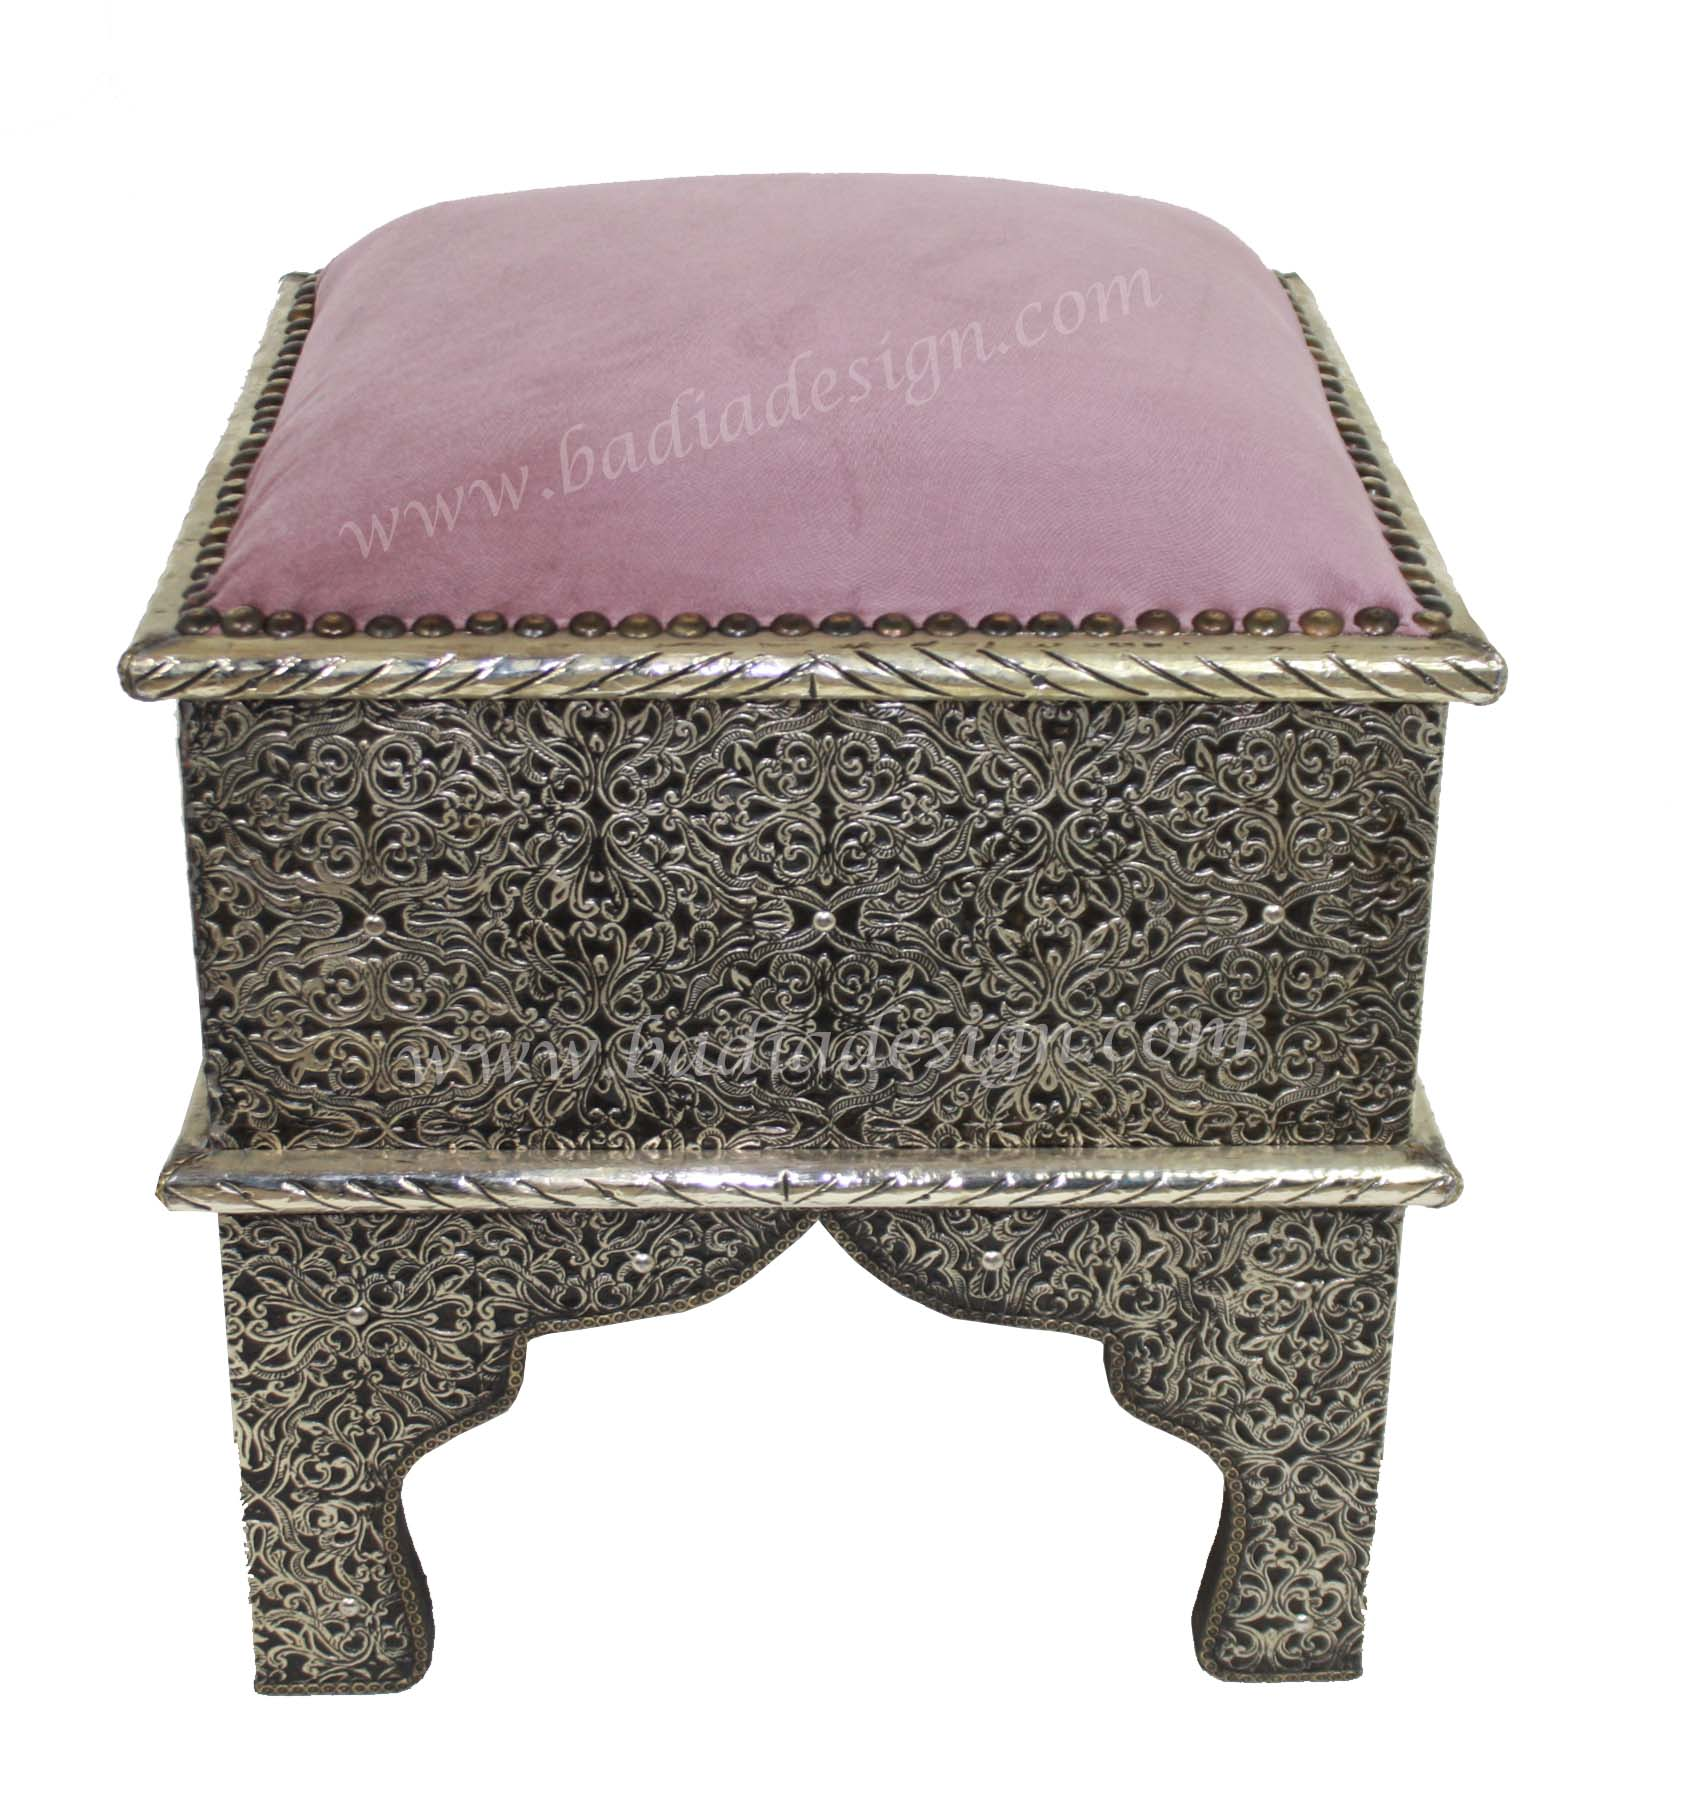 moroccan-metal-and-fabric-ottoman-1.jpg